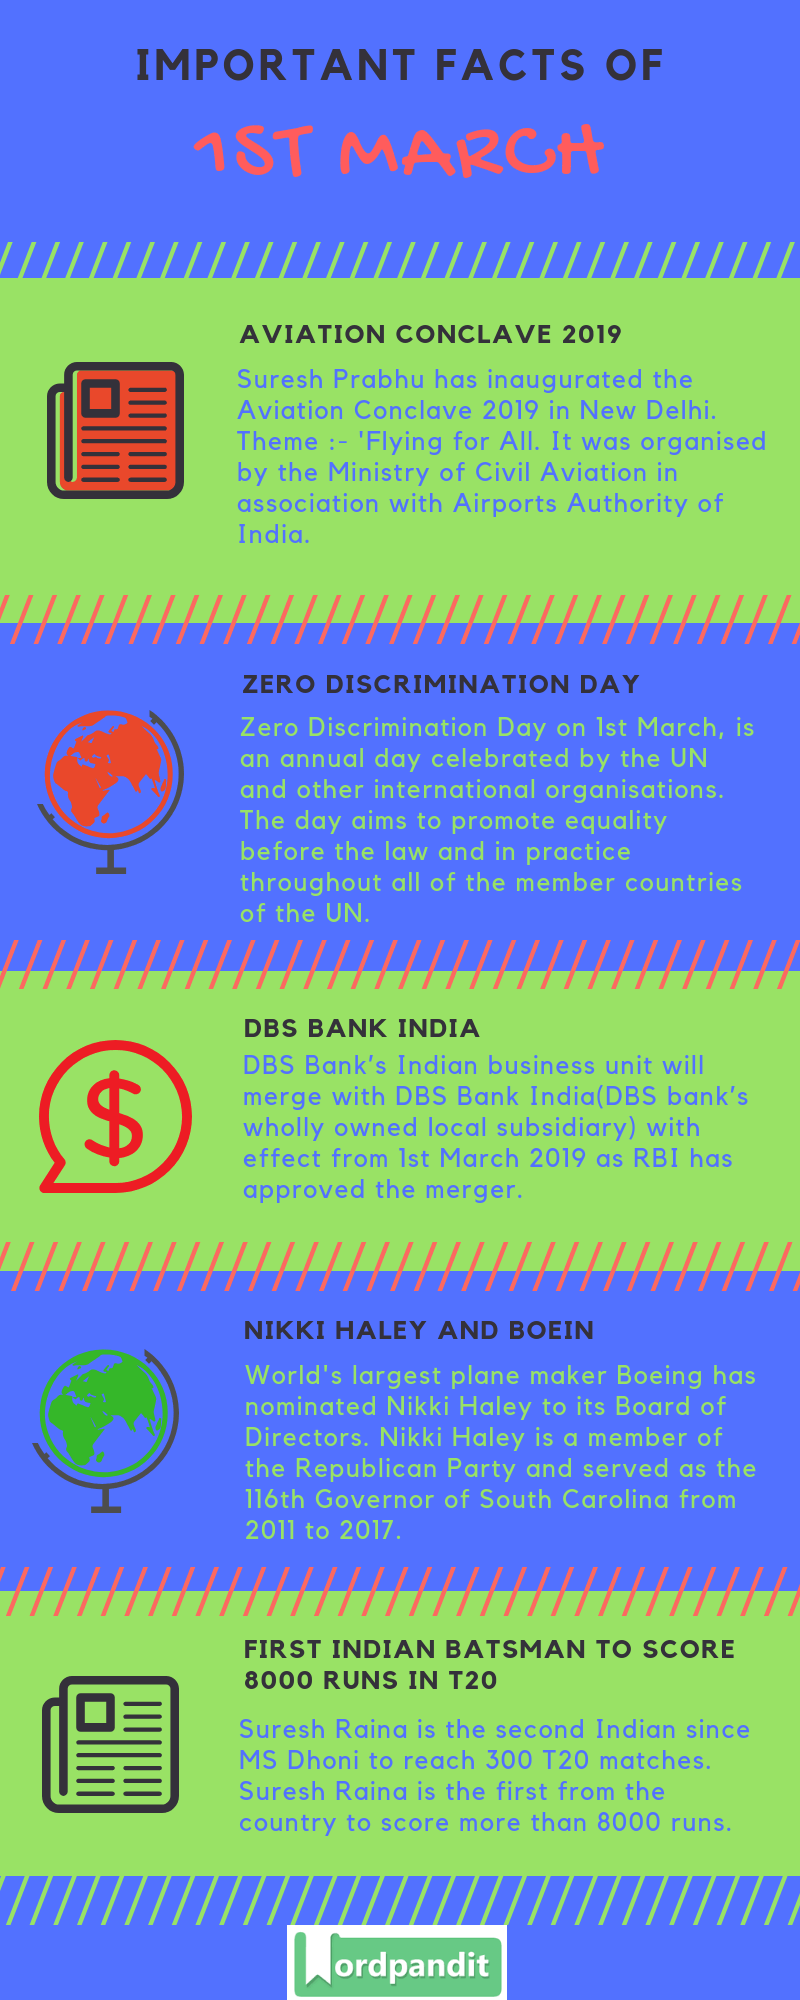 Daily Current Affairs 1 March 2019 Current Affairs Quiz 1 March 2019 Current Affairs Infographic